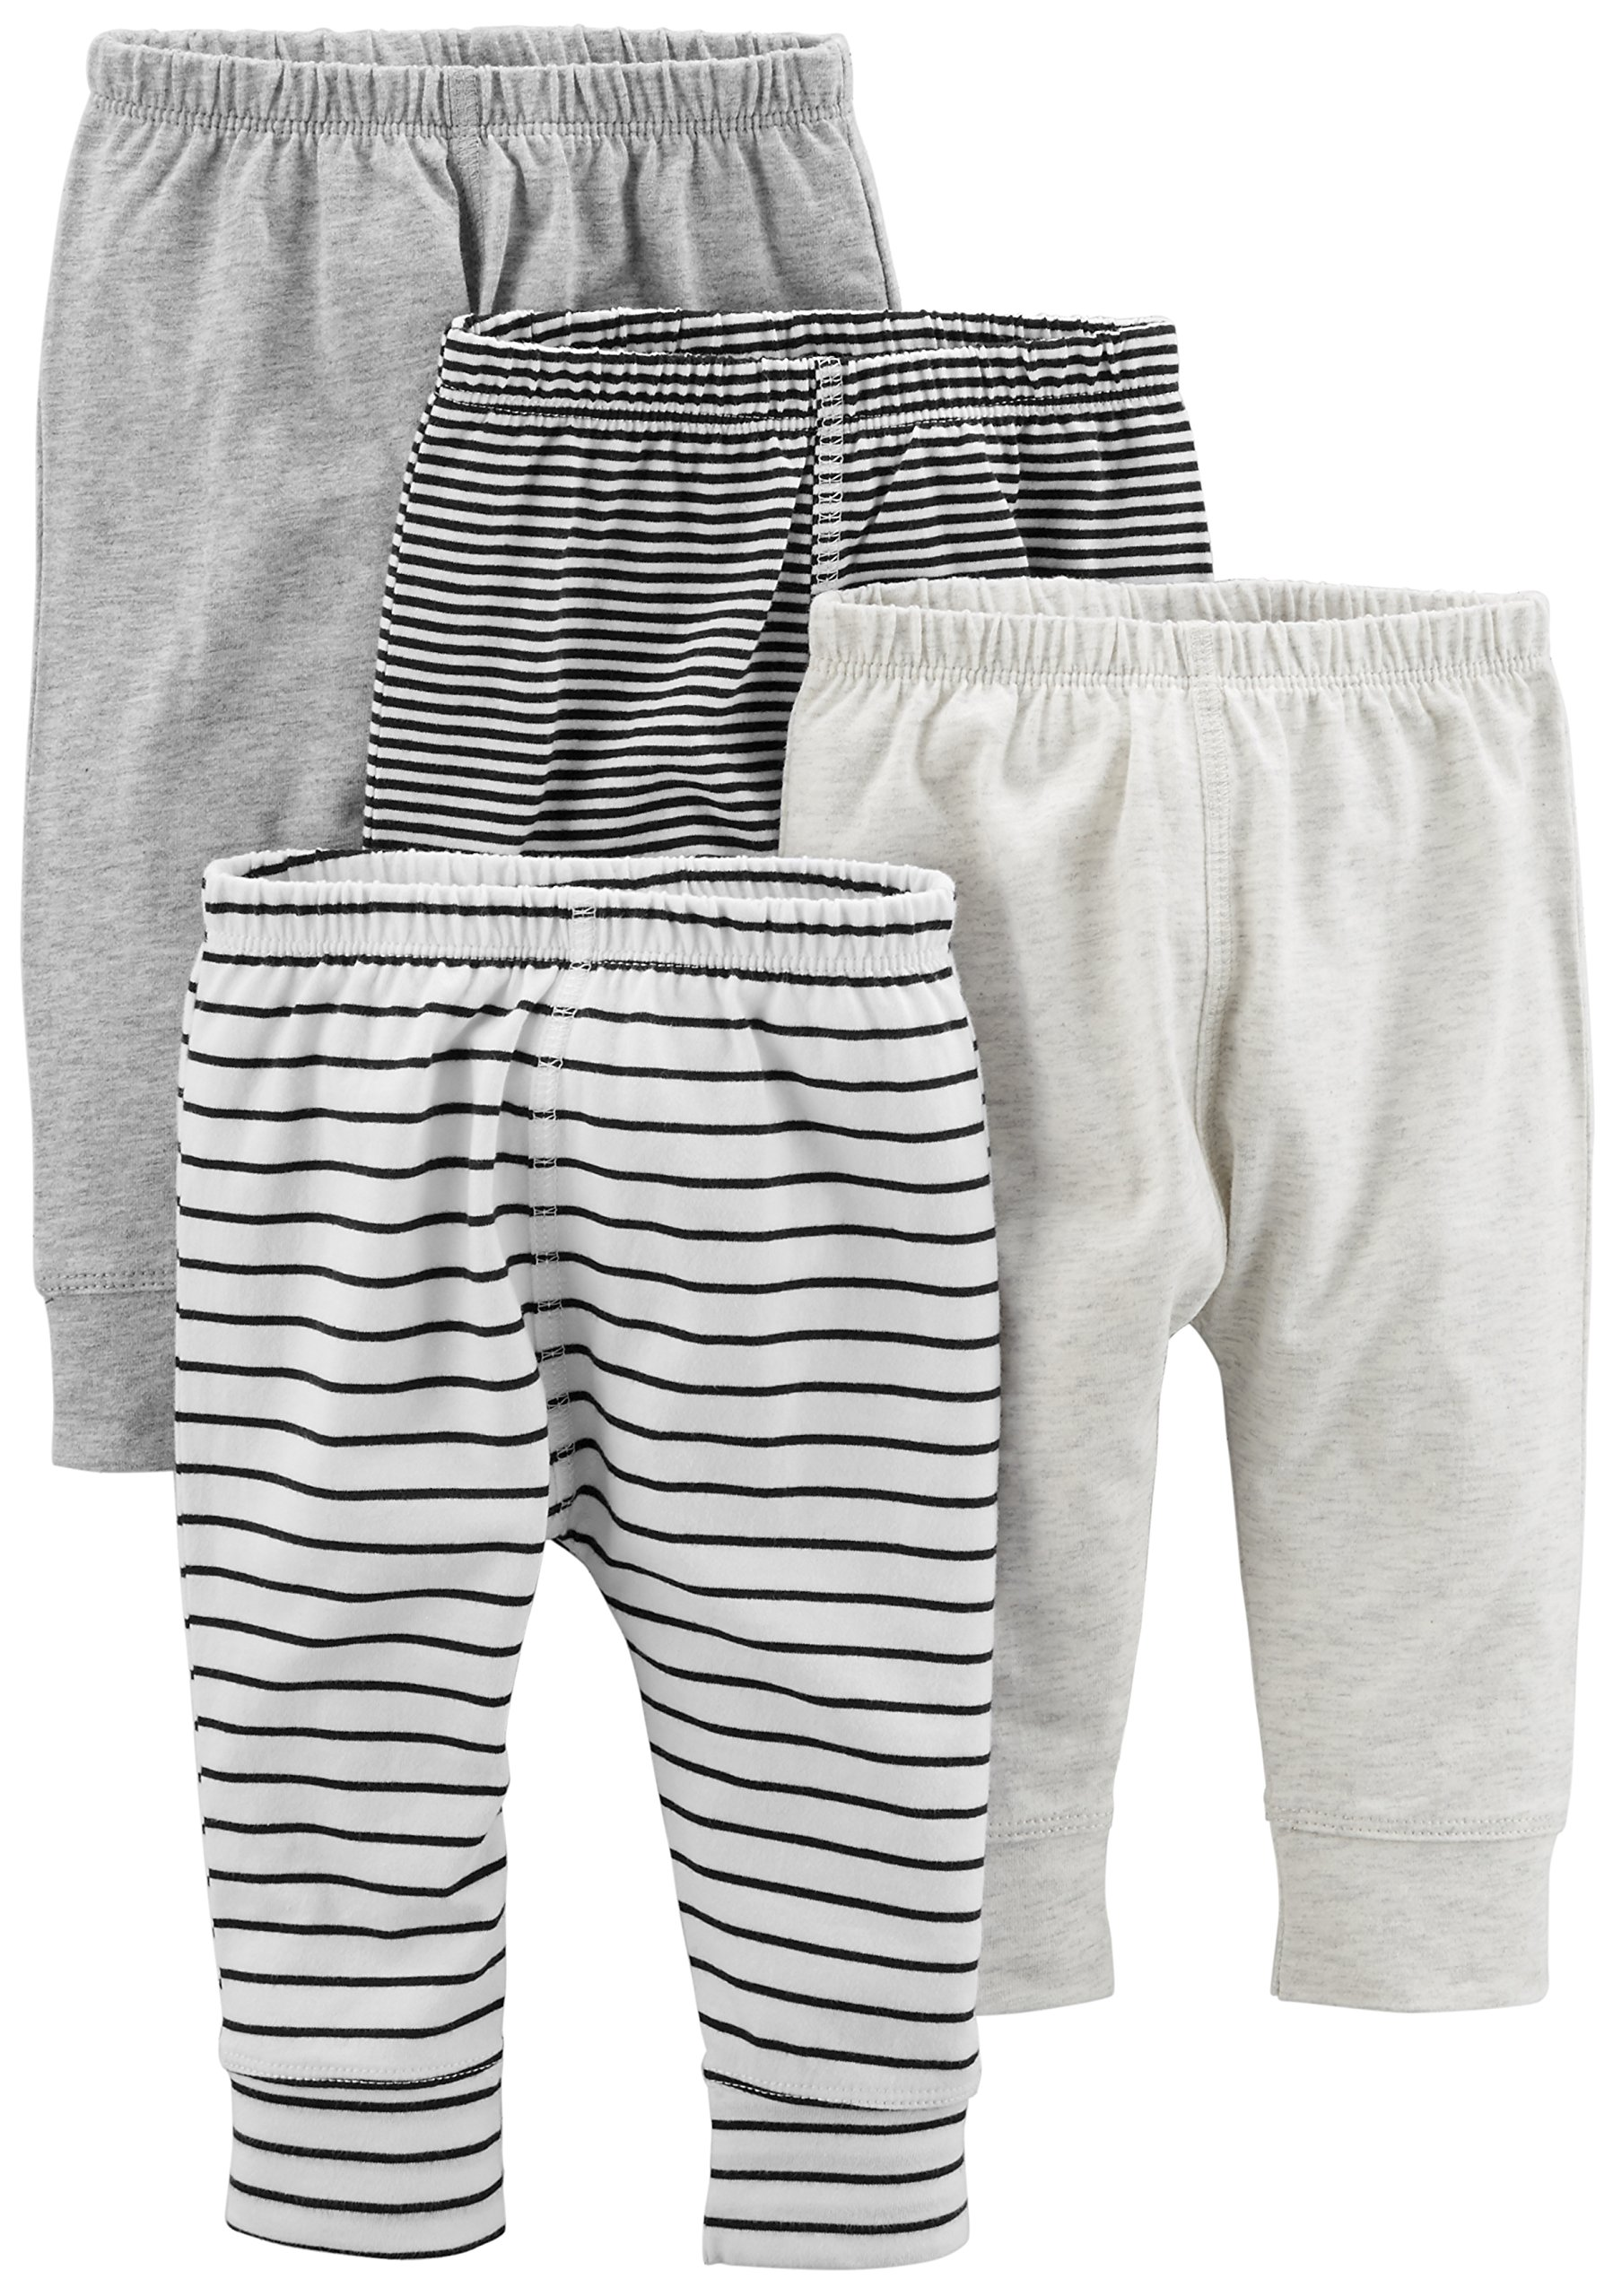 Simple Joys by Carter's Baby 4-Pack Pant, Gray/Gray Stripe, 0-3 Months